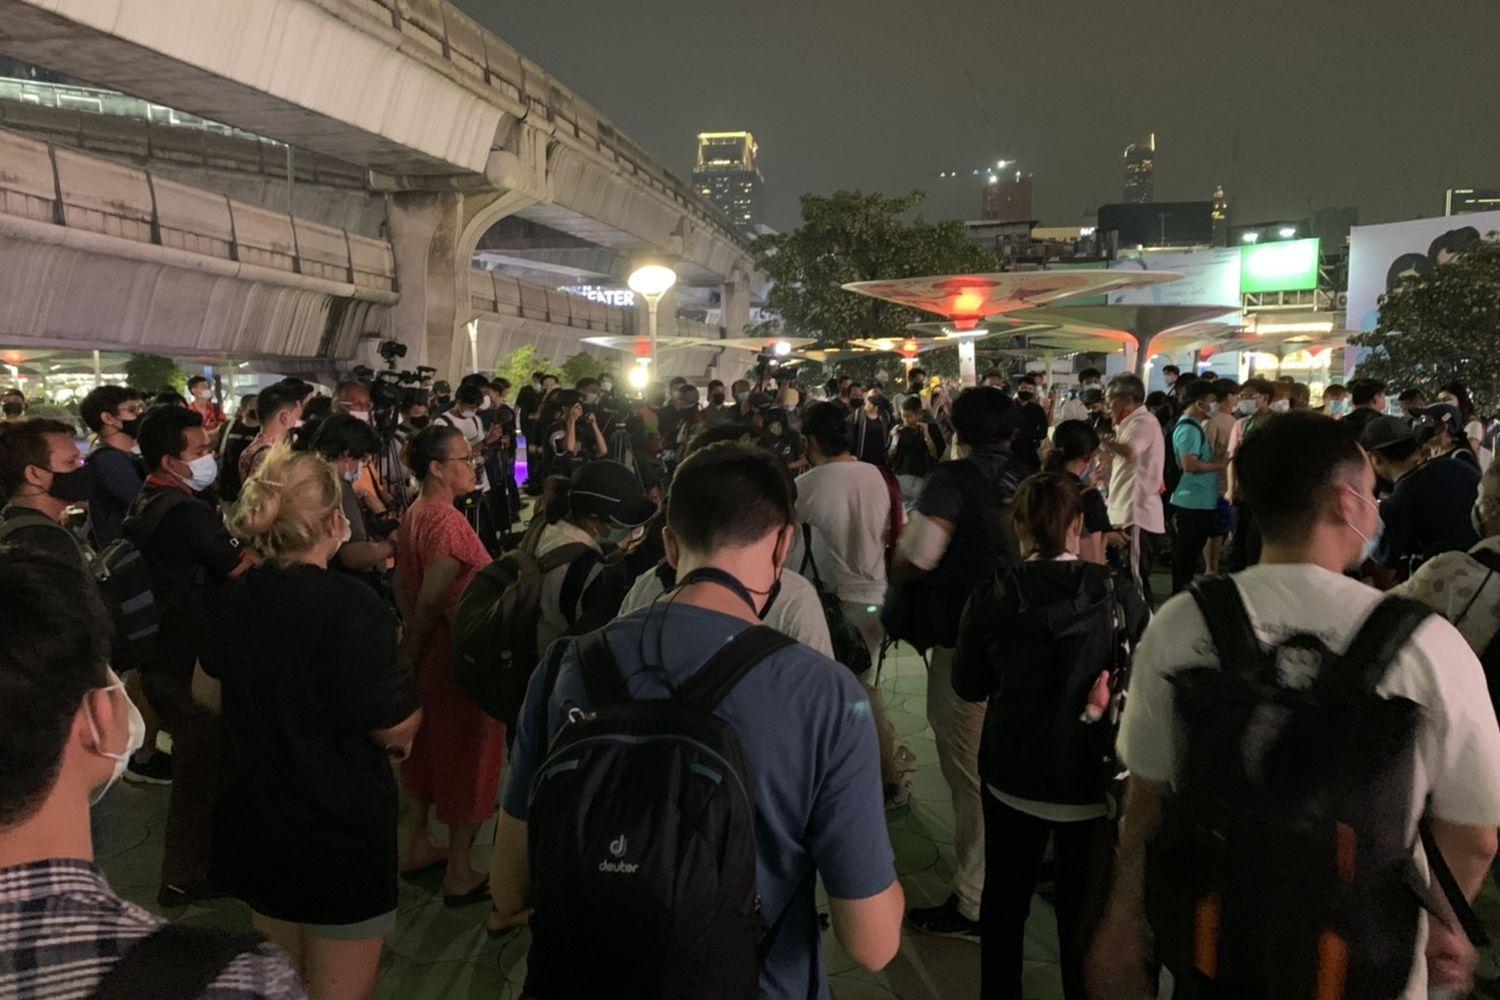 A number of people meet at Pathumwan intersection after news that key Ratsadon protesters were denied bail and detained on lese majeste charges. (Photo from Twitter: Nopkong @SAHINOP)